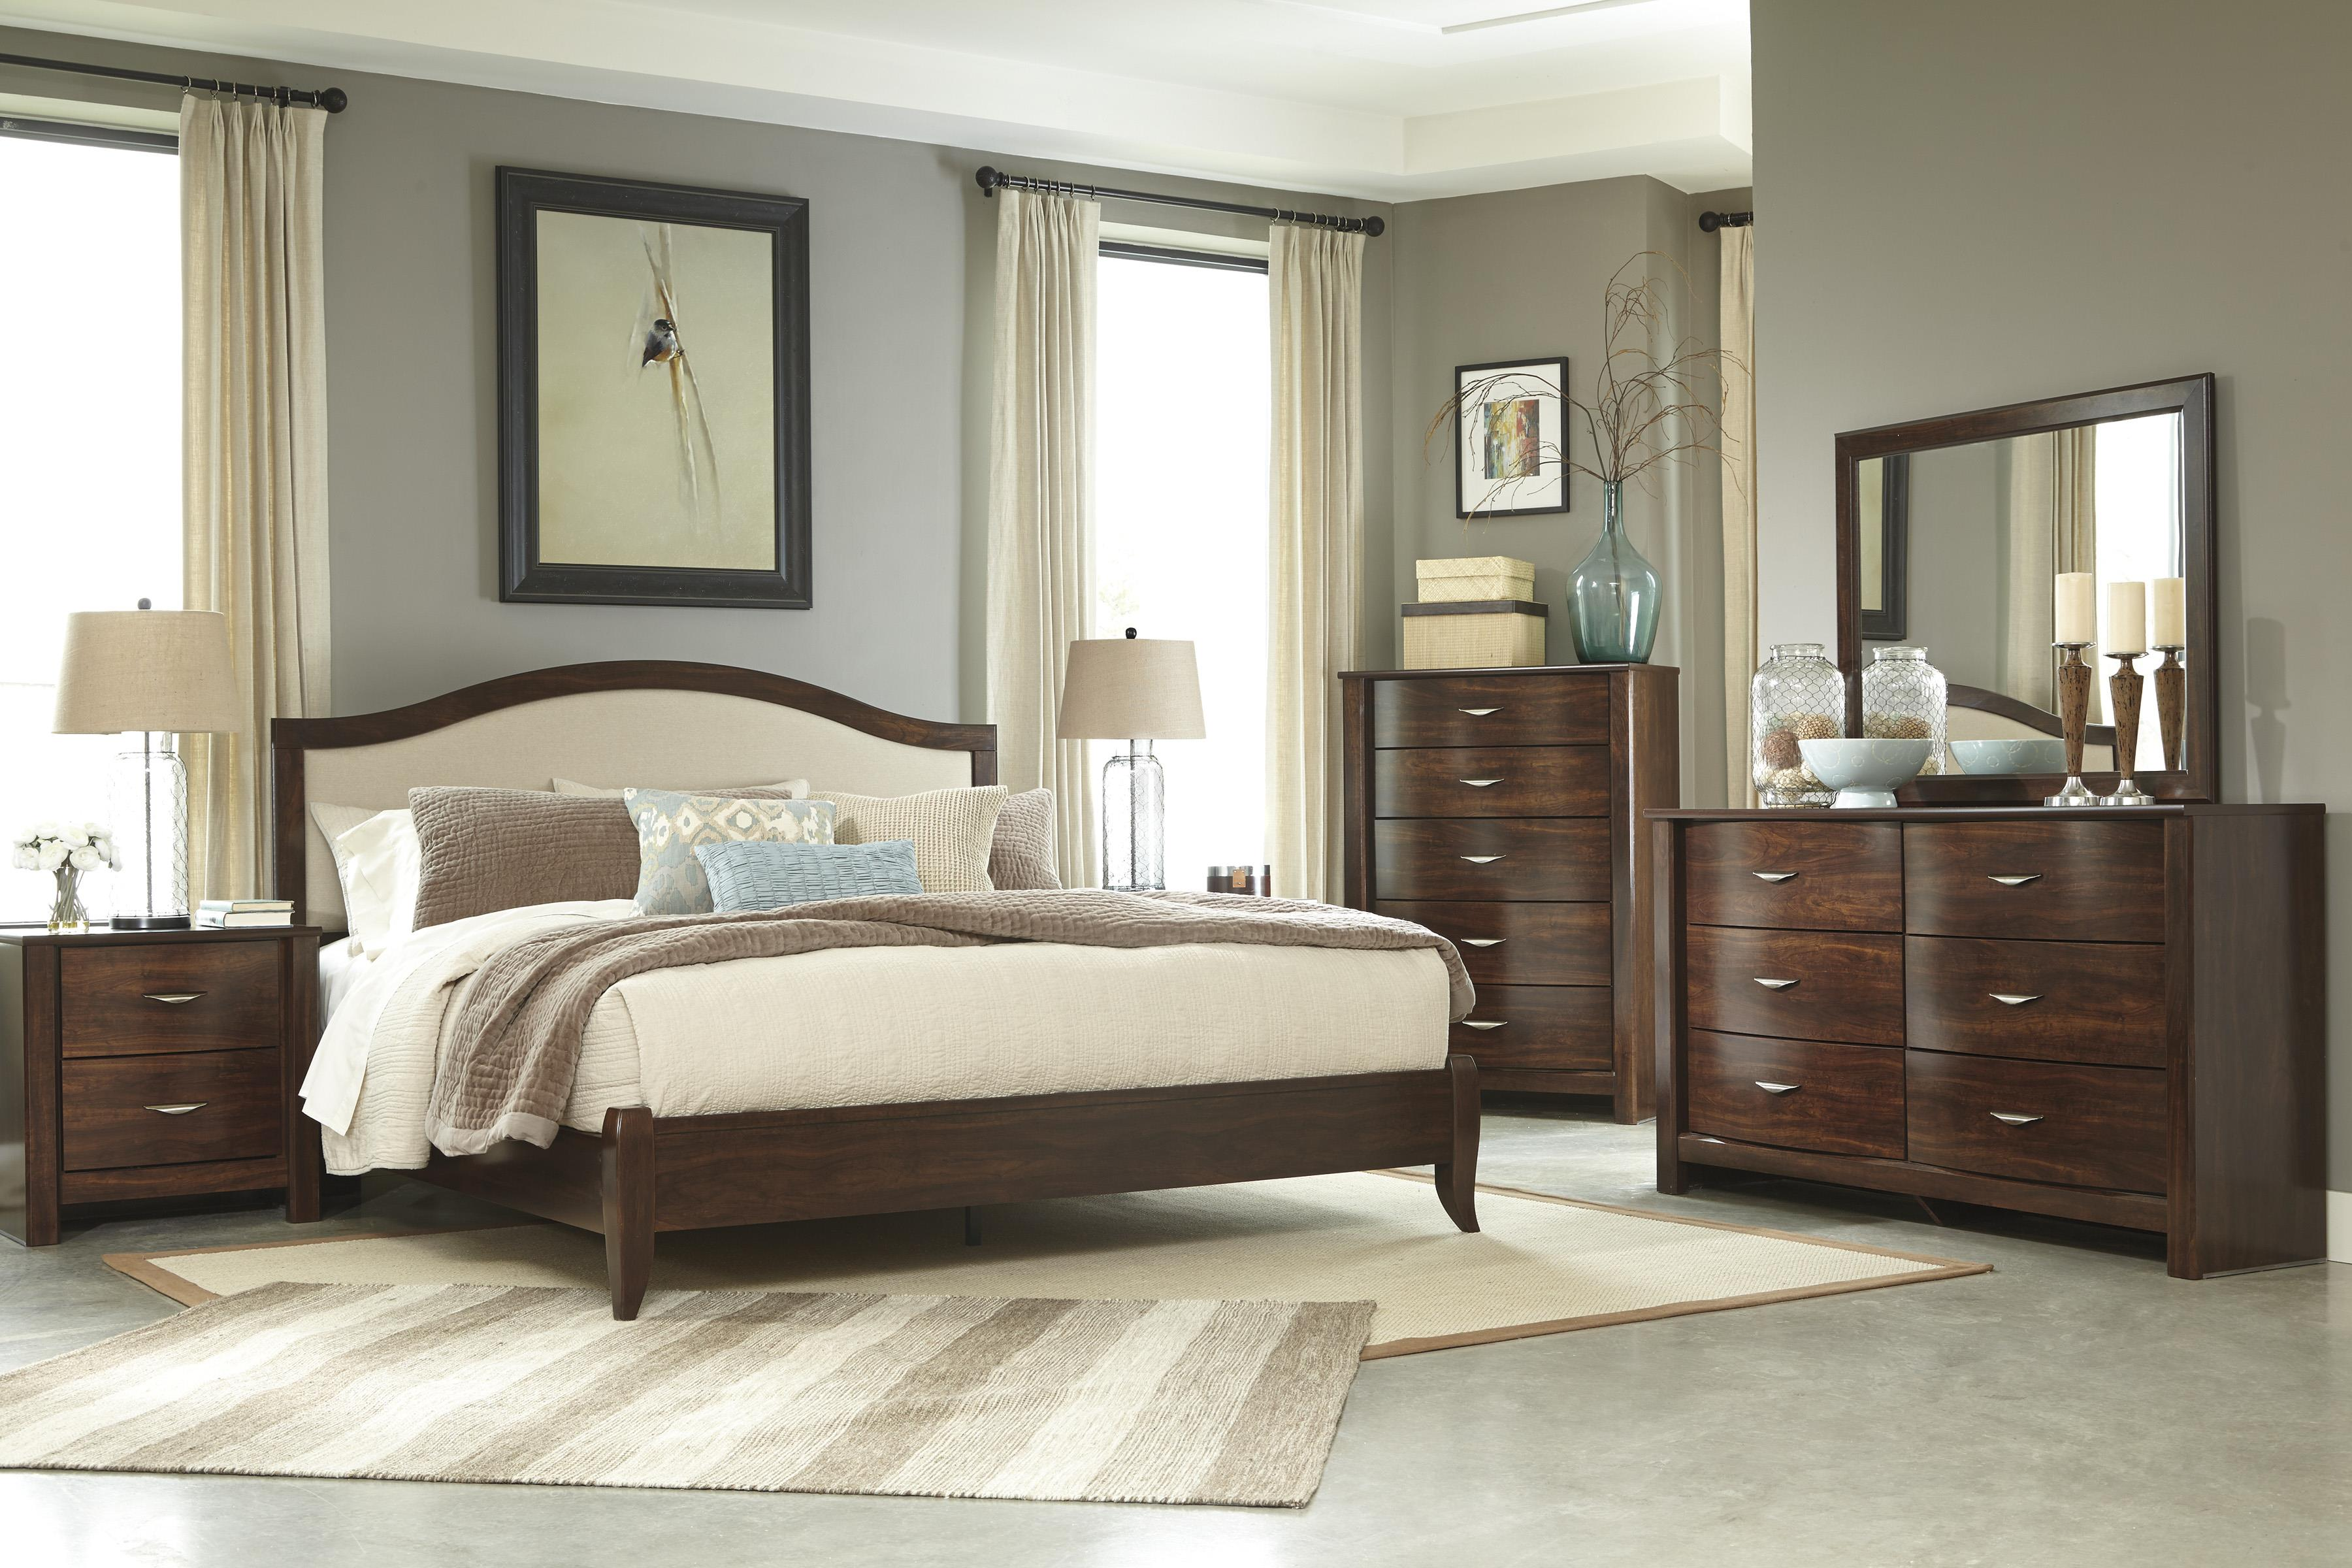 Signature Design by Ashley Corraya King Bedroom Group - Item Number: B428 K Bedroom Group 4